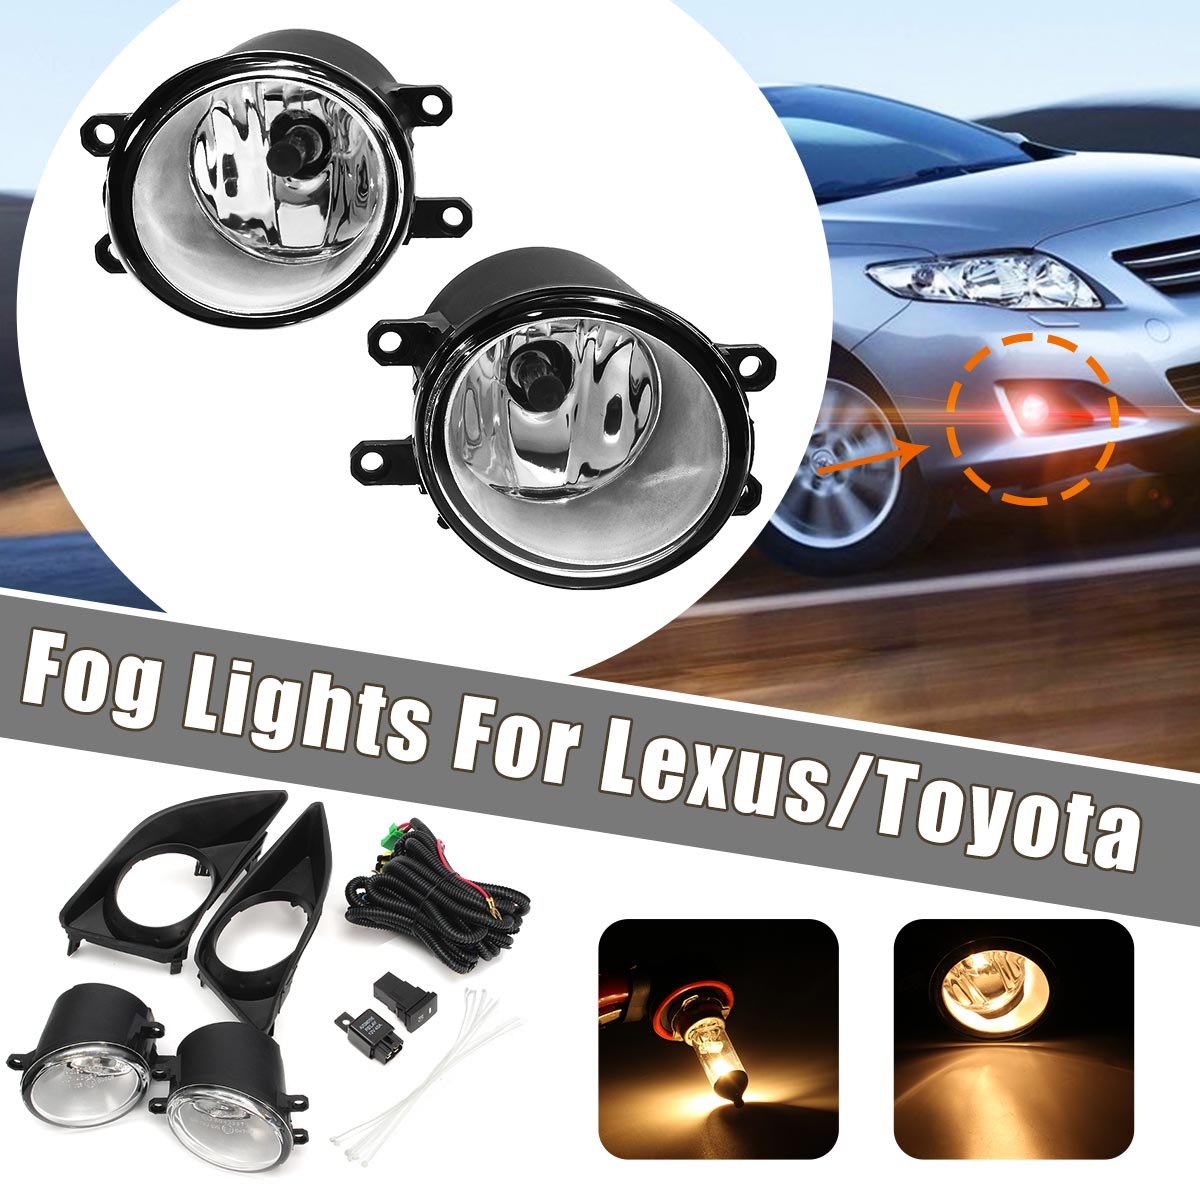 2Pcs H11 Car Front Bumper Left/Right Fog Light Lamp+Black Grille Covers Switch H11 Bulbs For Toyota Corolla 2008-2010 2pcs front bumper left right fog light lamp black grille covers switch h11 bulbs for toyota corolla 2008 2010